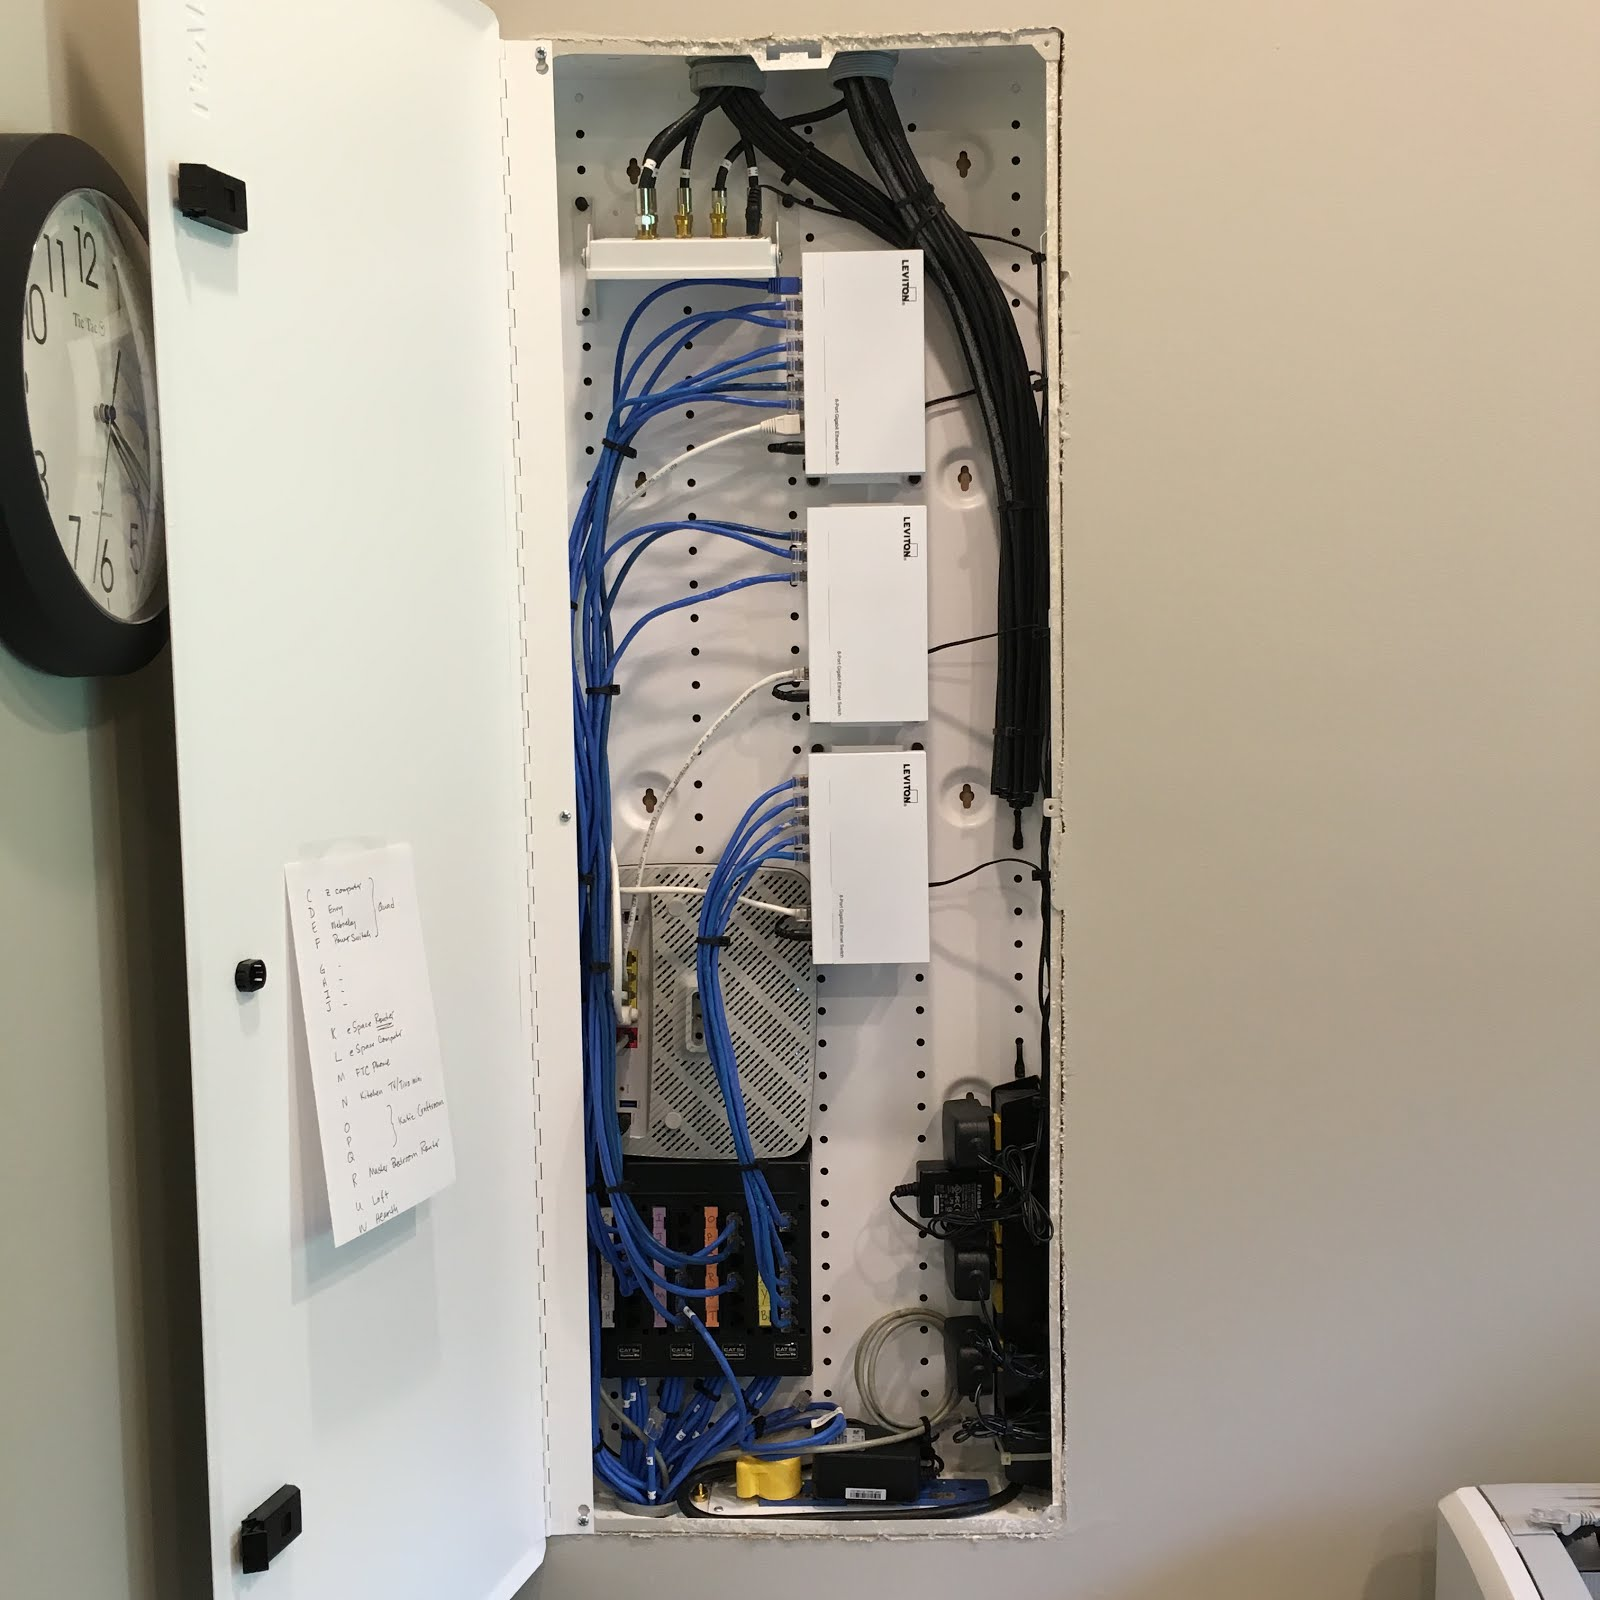 W4UOA: Reworked structured wiring panel on